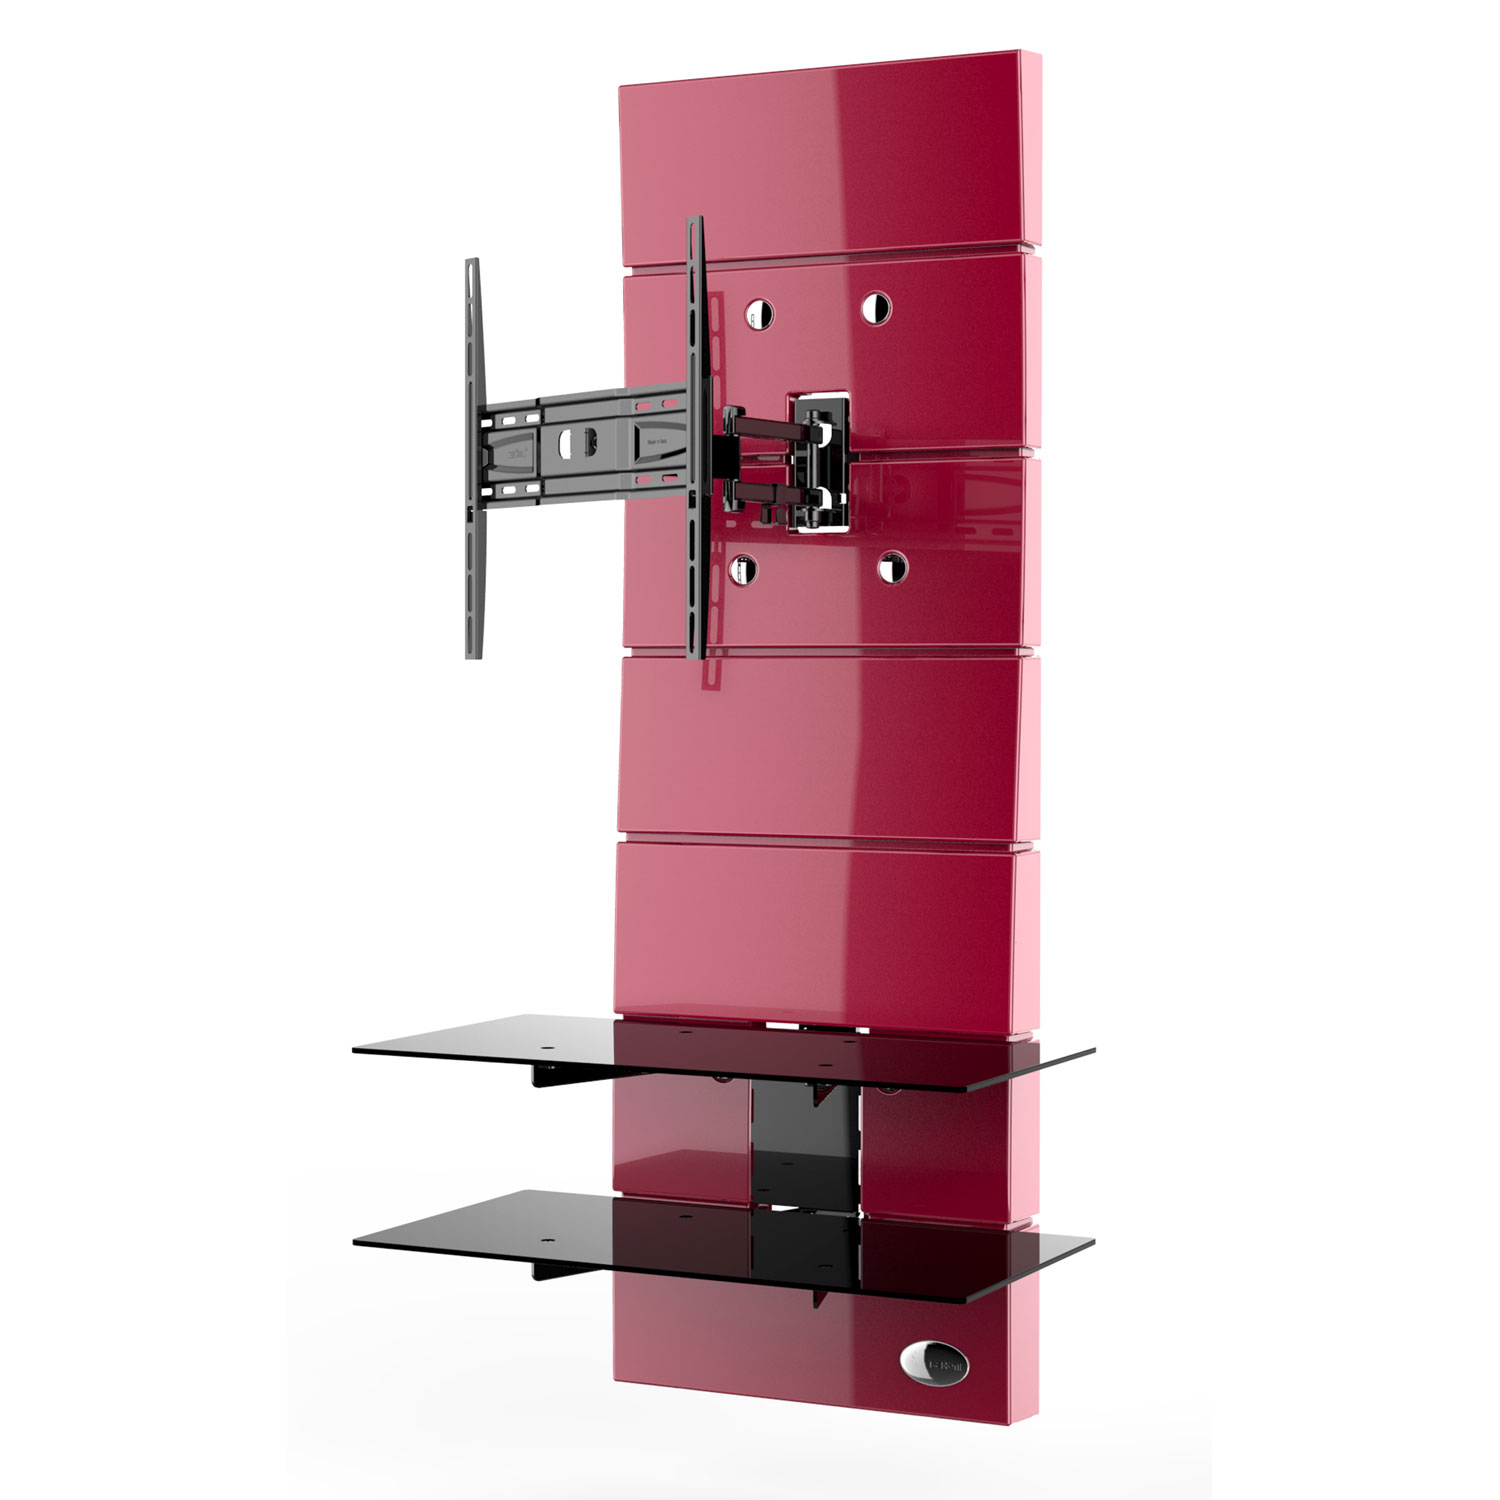 meliconi ghost design 3000 rotation rouge meuble tv meliconi sur. Black Bedroom Furniture Sets. Home Design Ideas